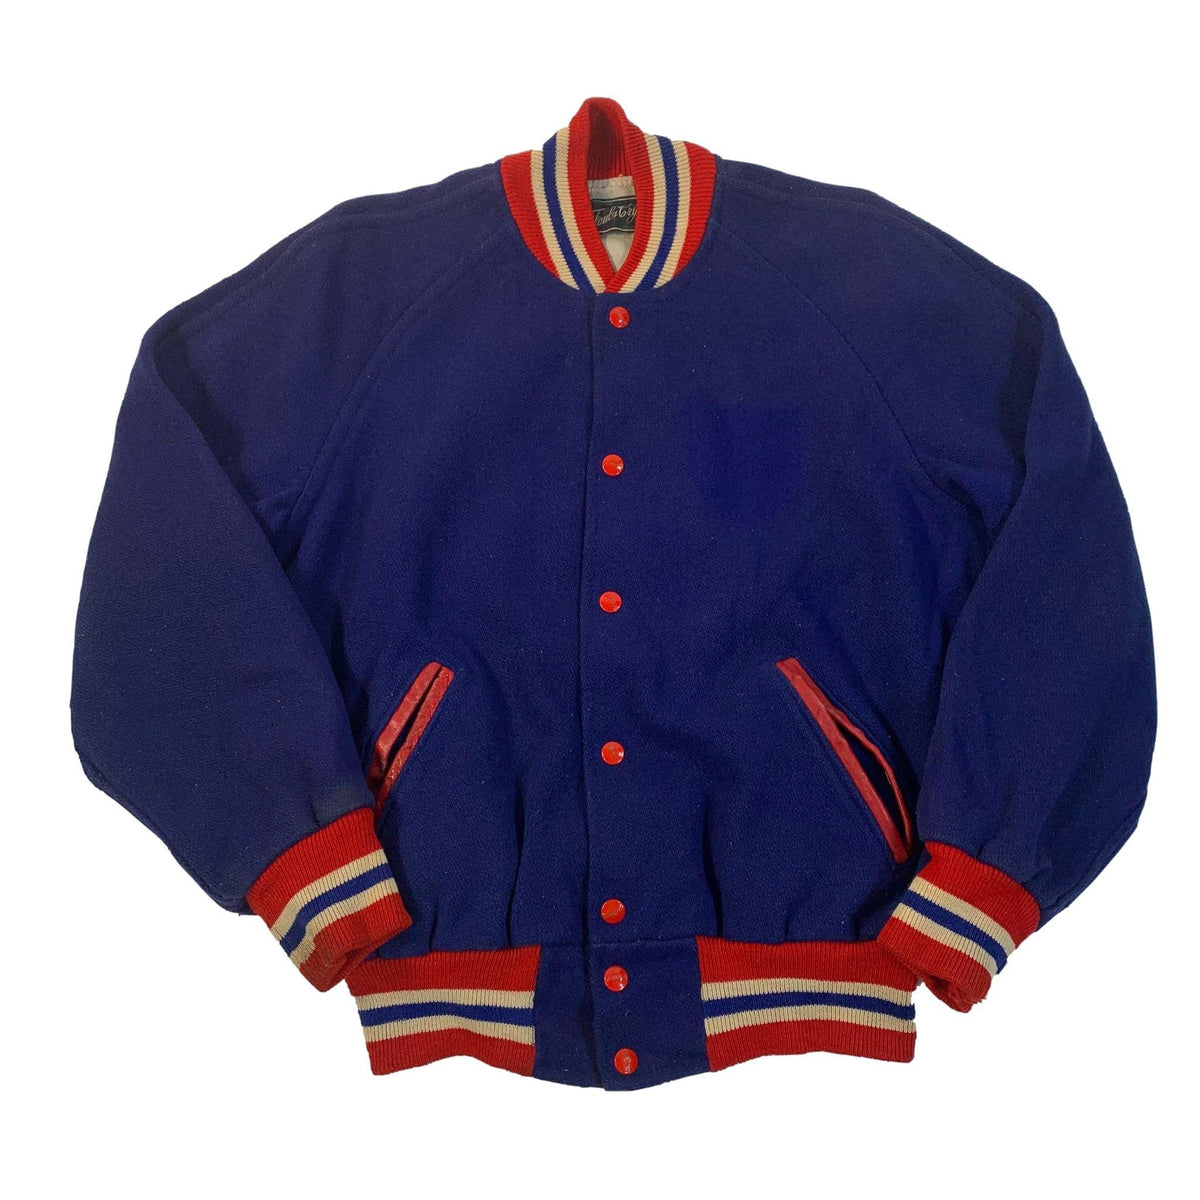 "Vintage Faul & Crymes Sporting Goods ""Wool"" Letterman Jacket"